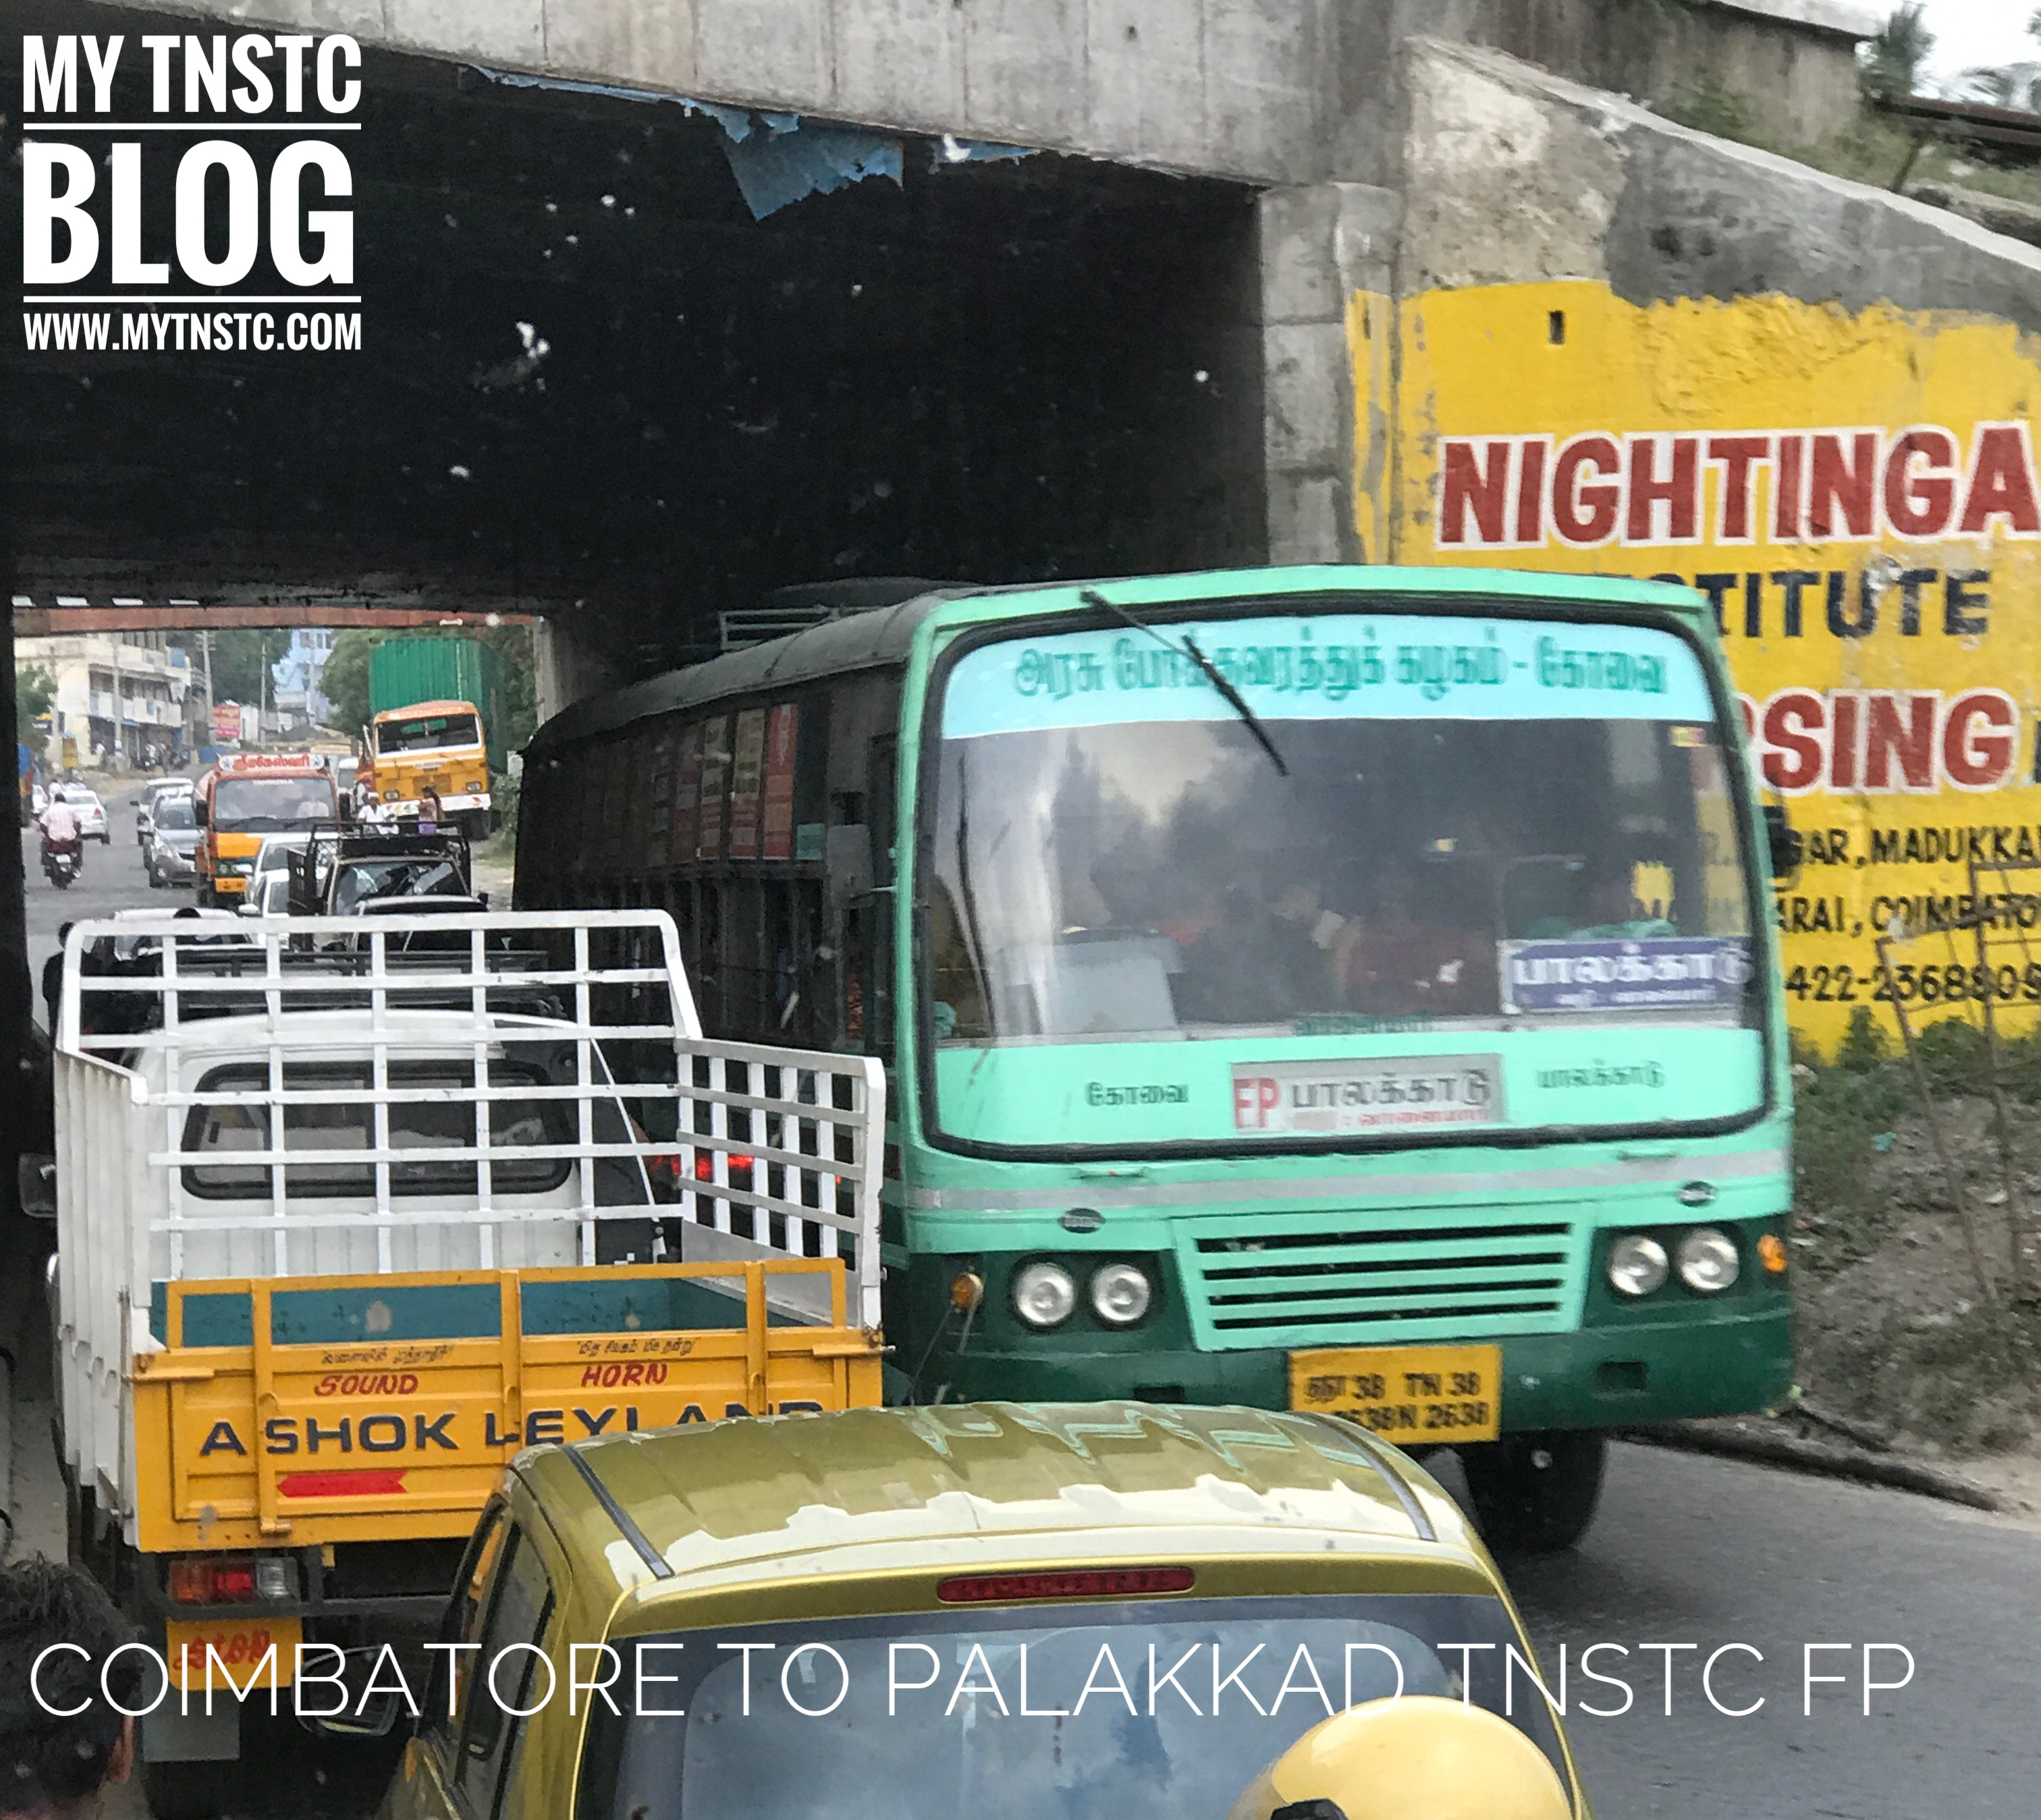 TNSTC Fast Passenger Service from Coimbatore To Palakkad